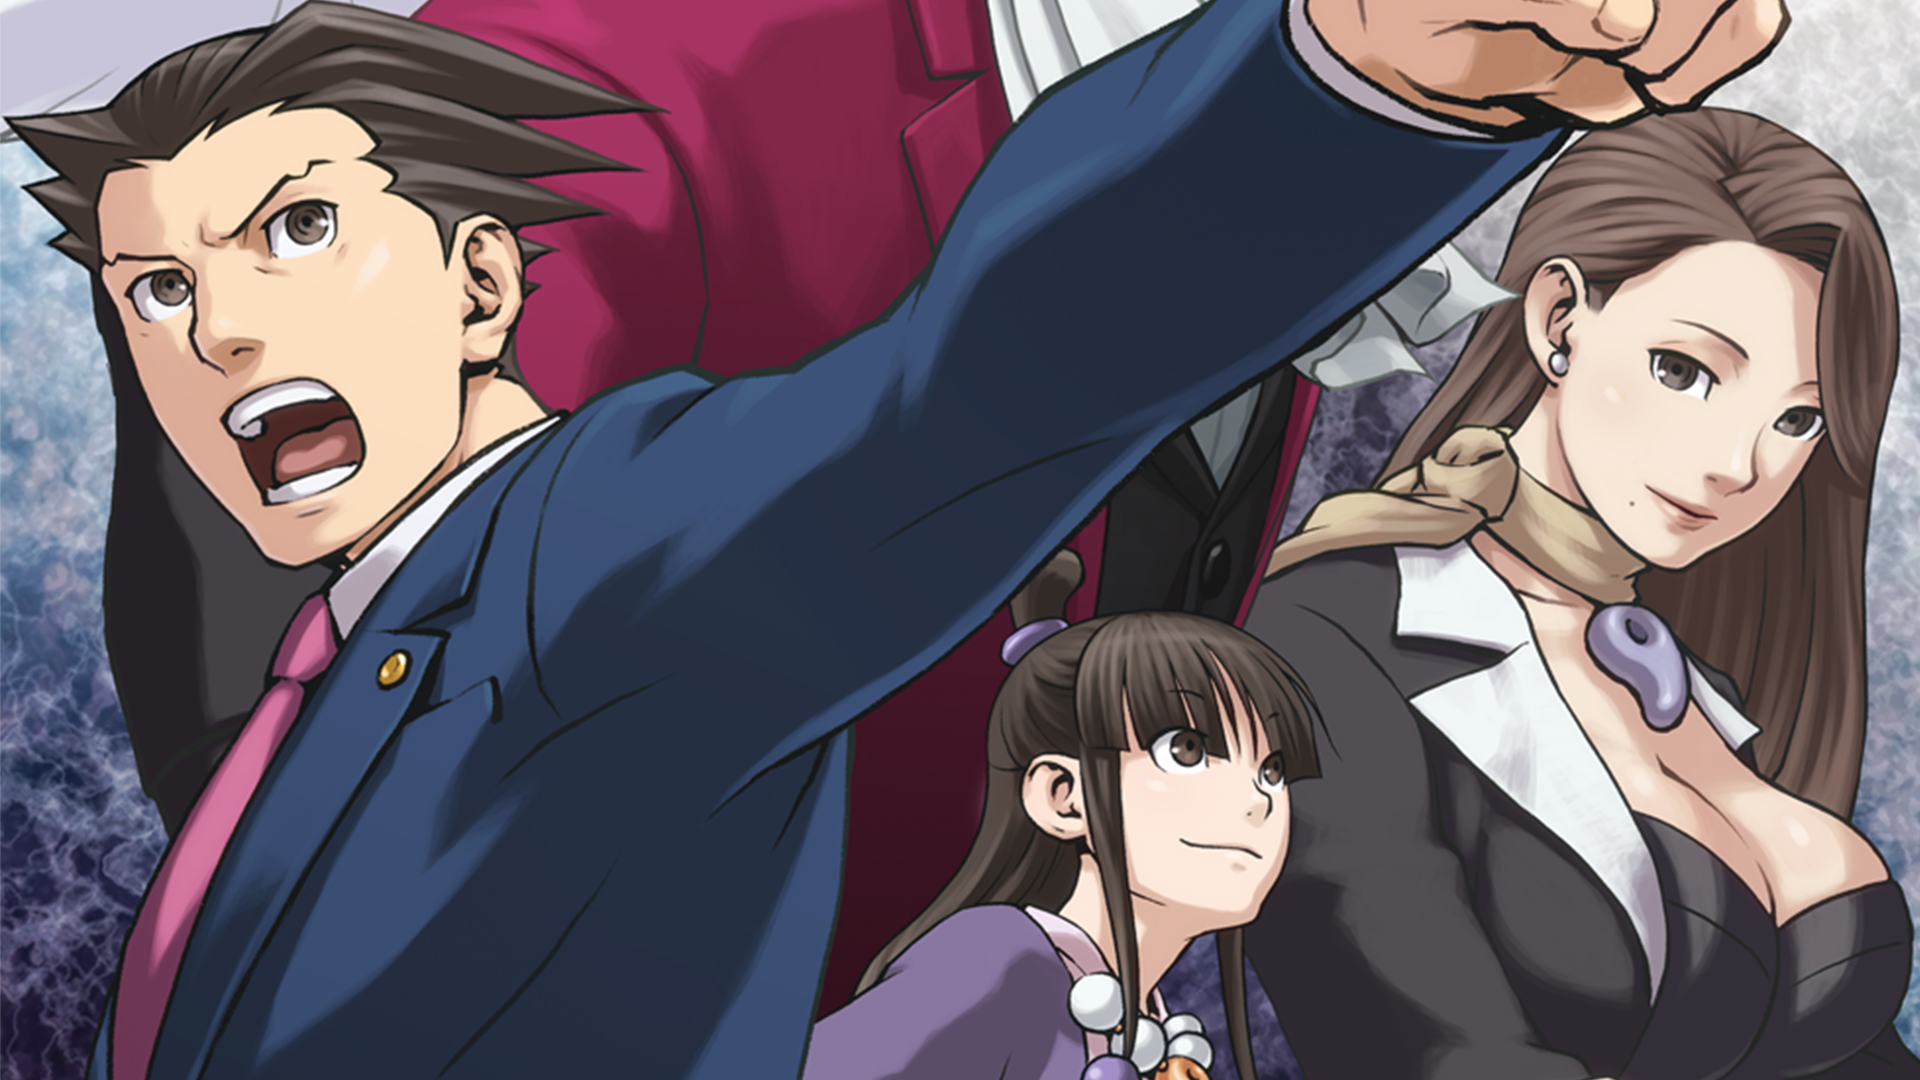 Free Download No Objections Phoenix Wright Ace Attorney Trilogy